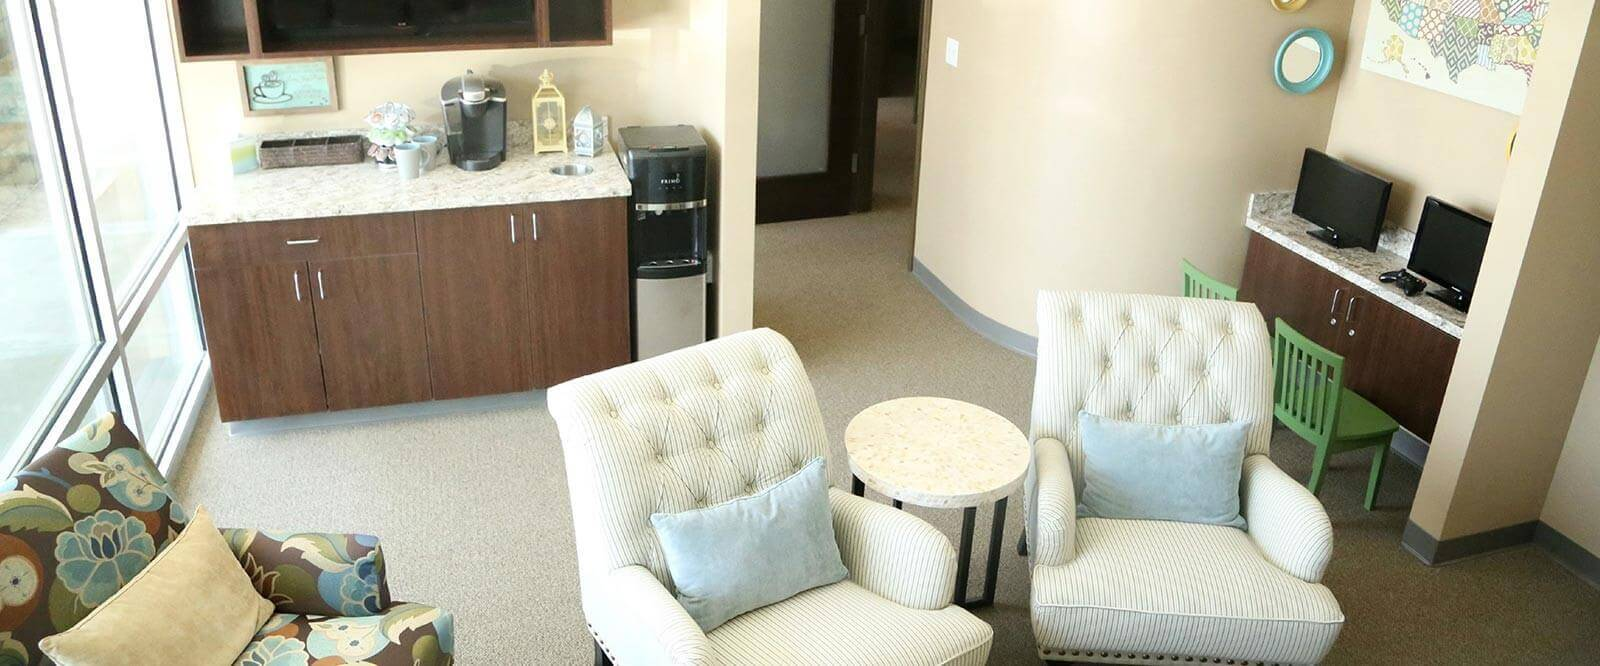 Waiting Room And Beverage Station